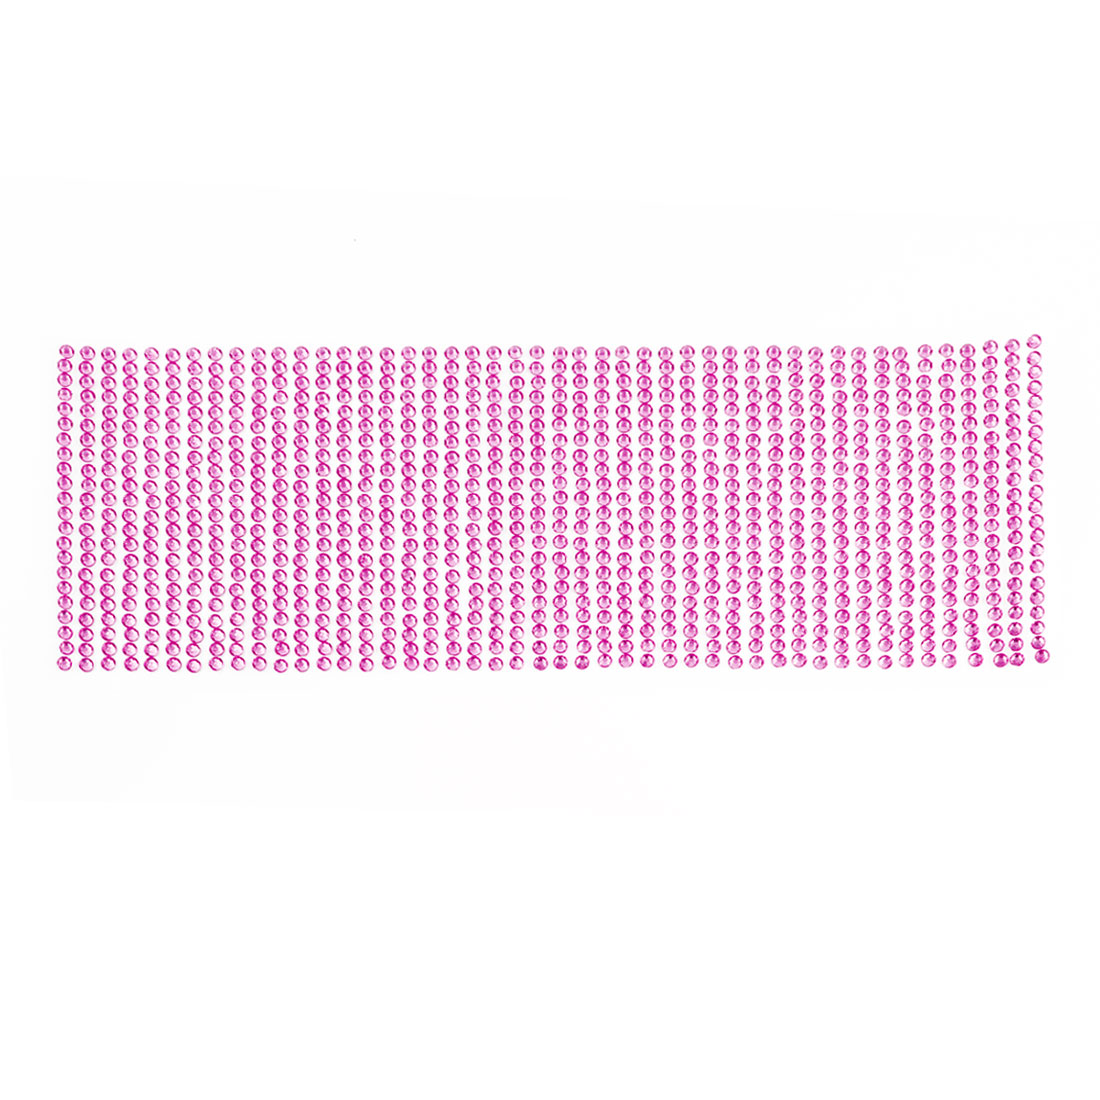 25.5cm x 9cm Pink Glittery Crystals Connected Sticker Sheet for Vehicle Car